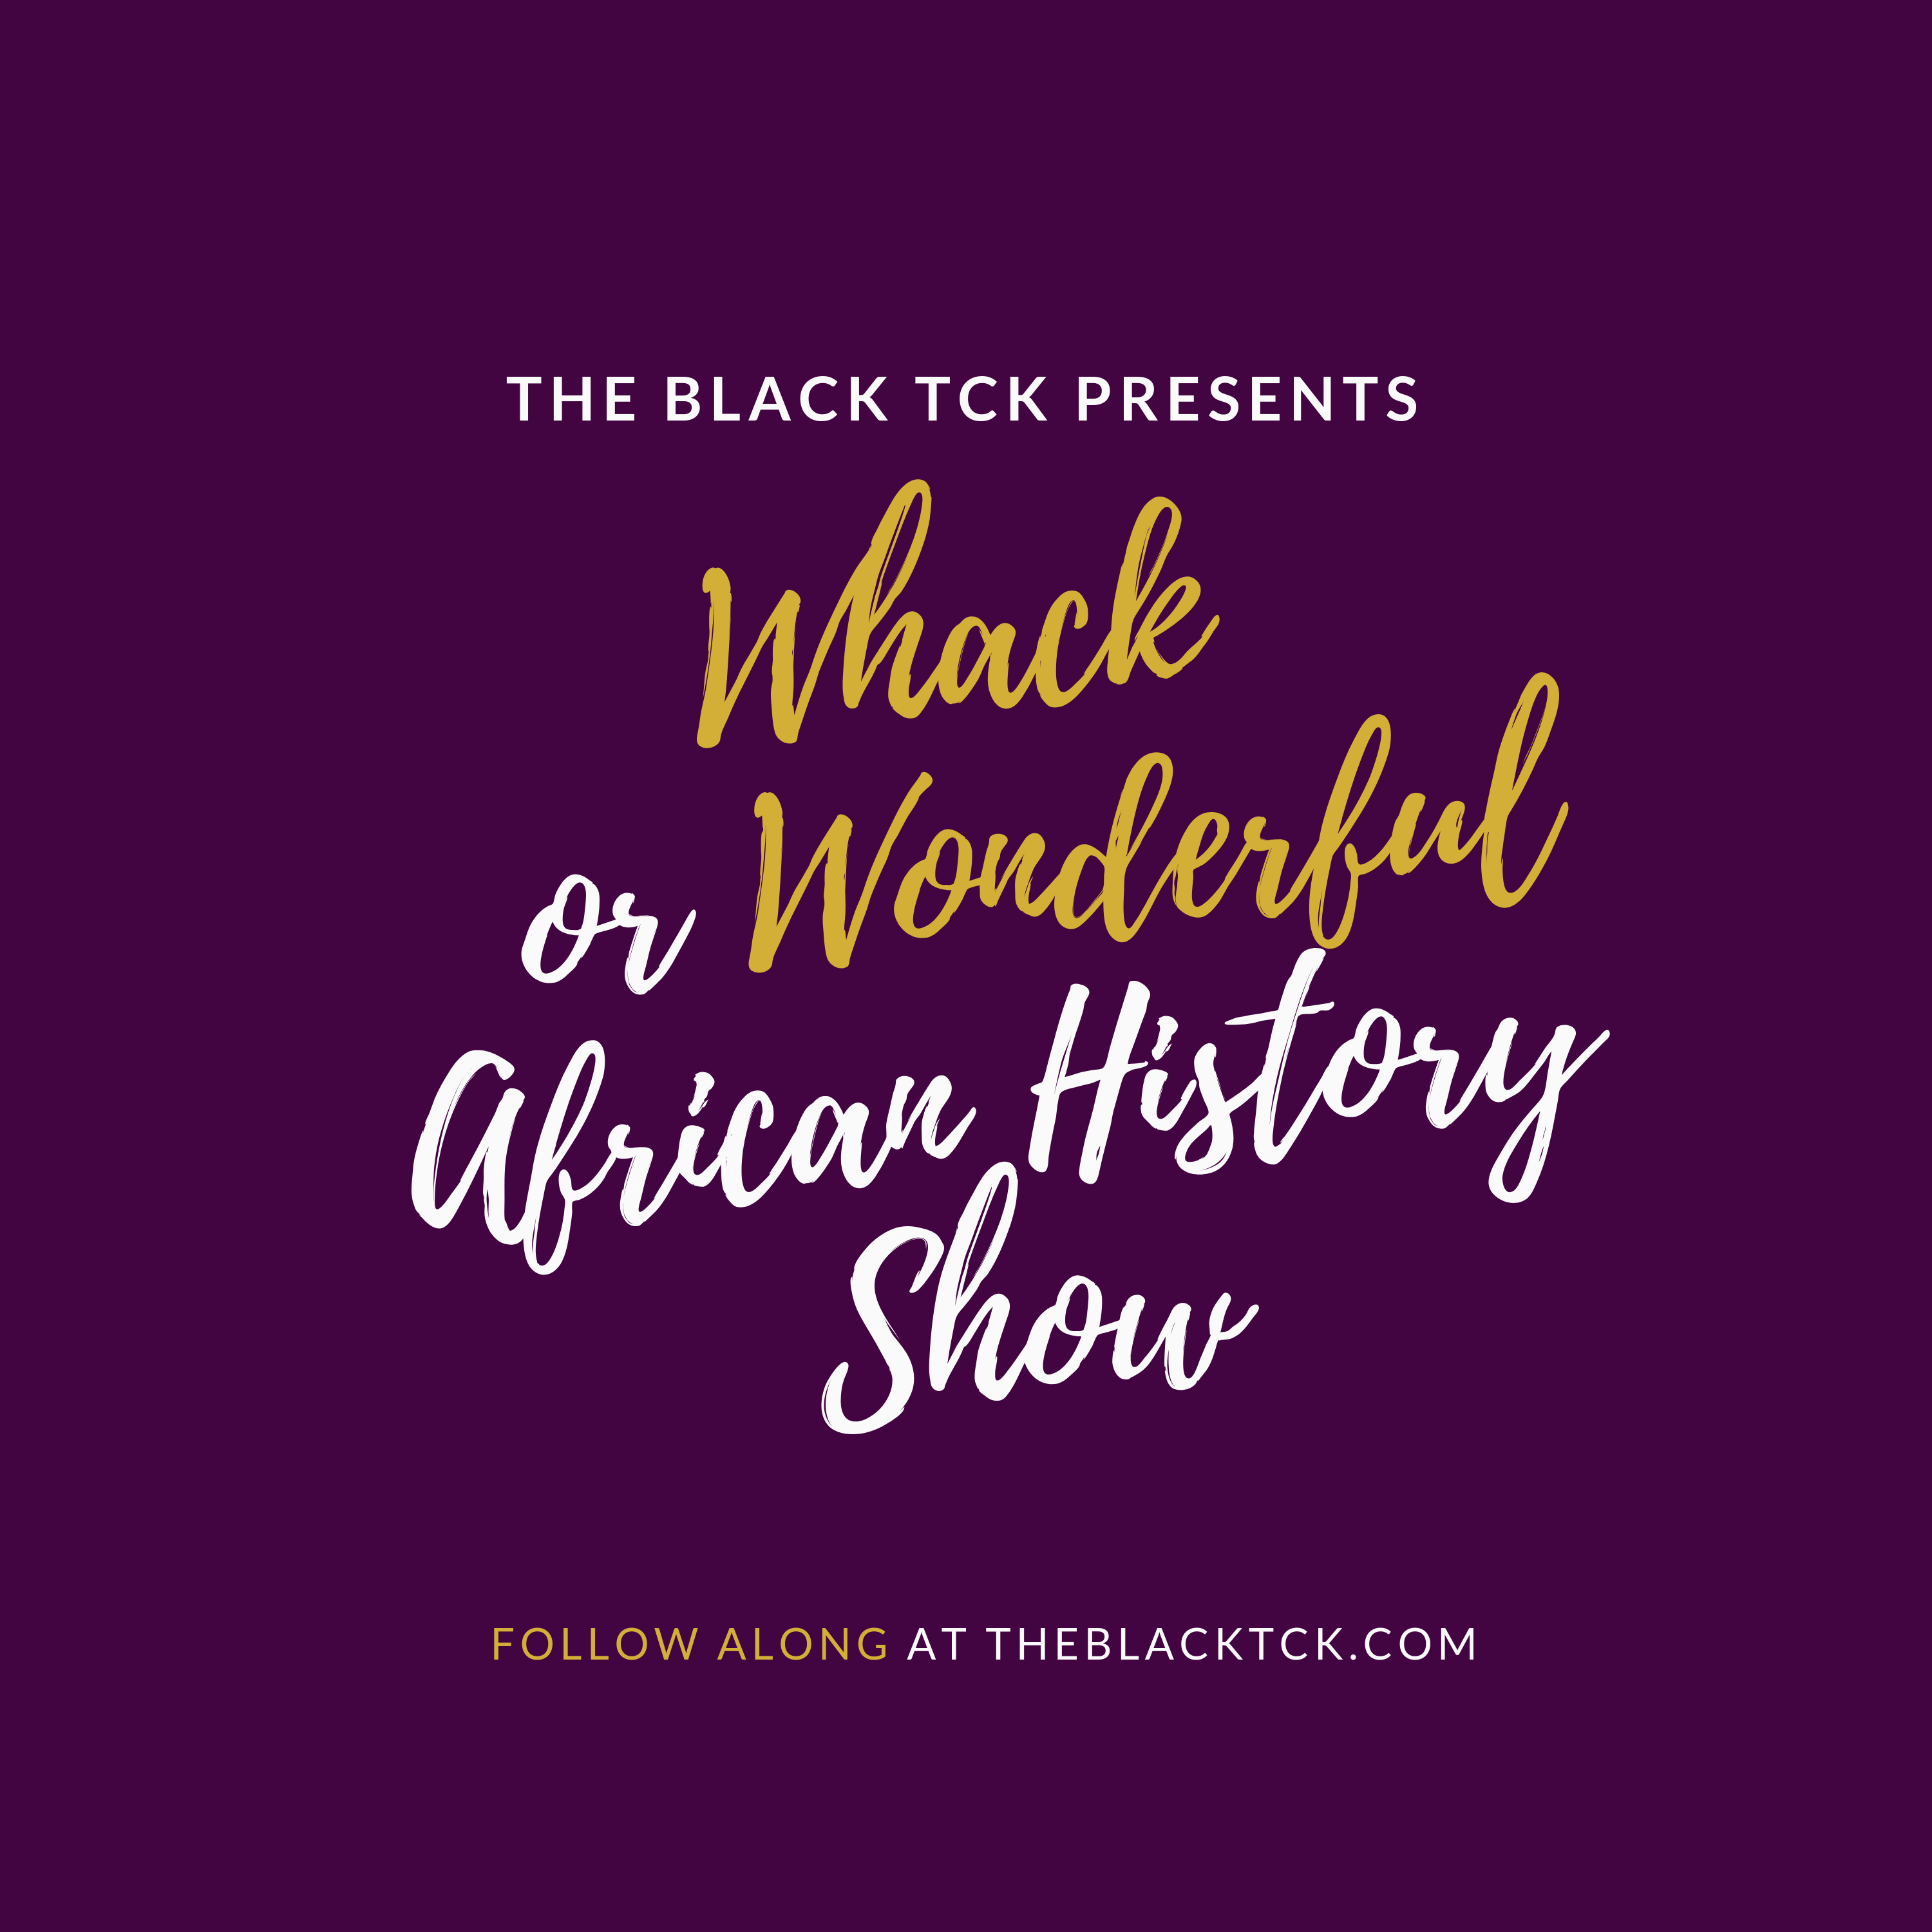 Whack and Wonderful African History Coming soon to a show near you!